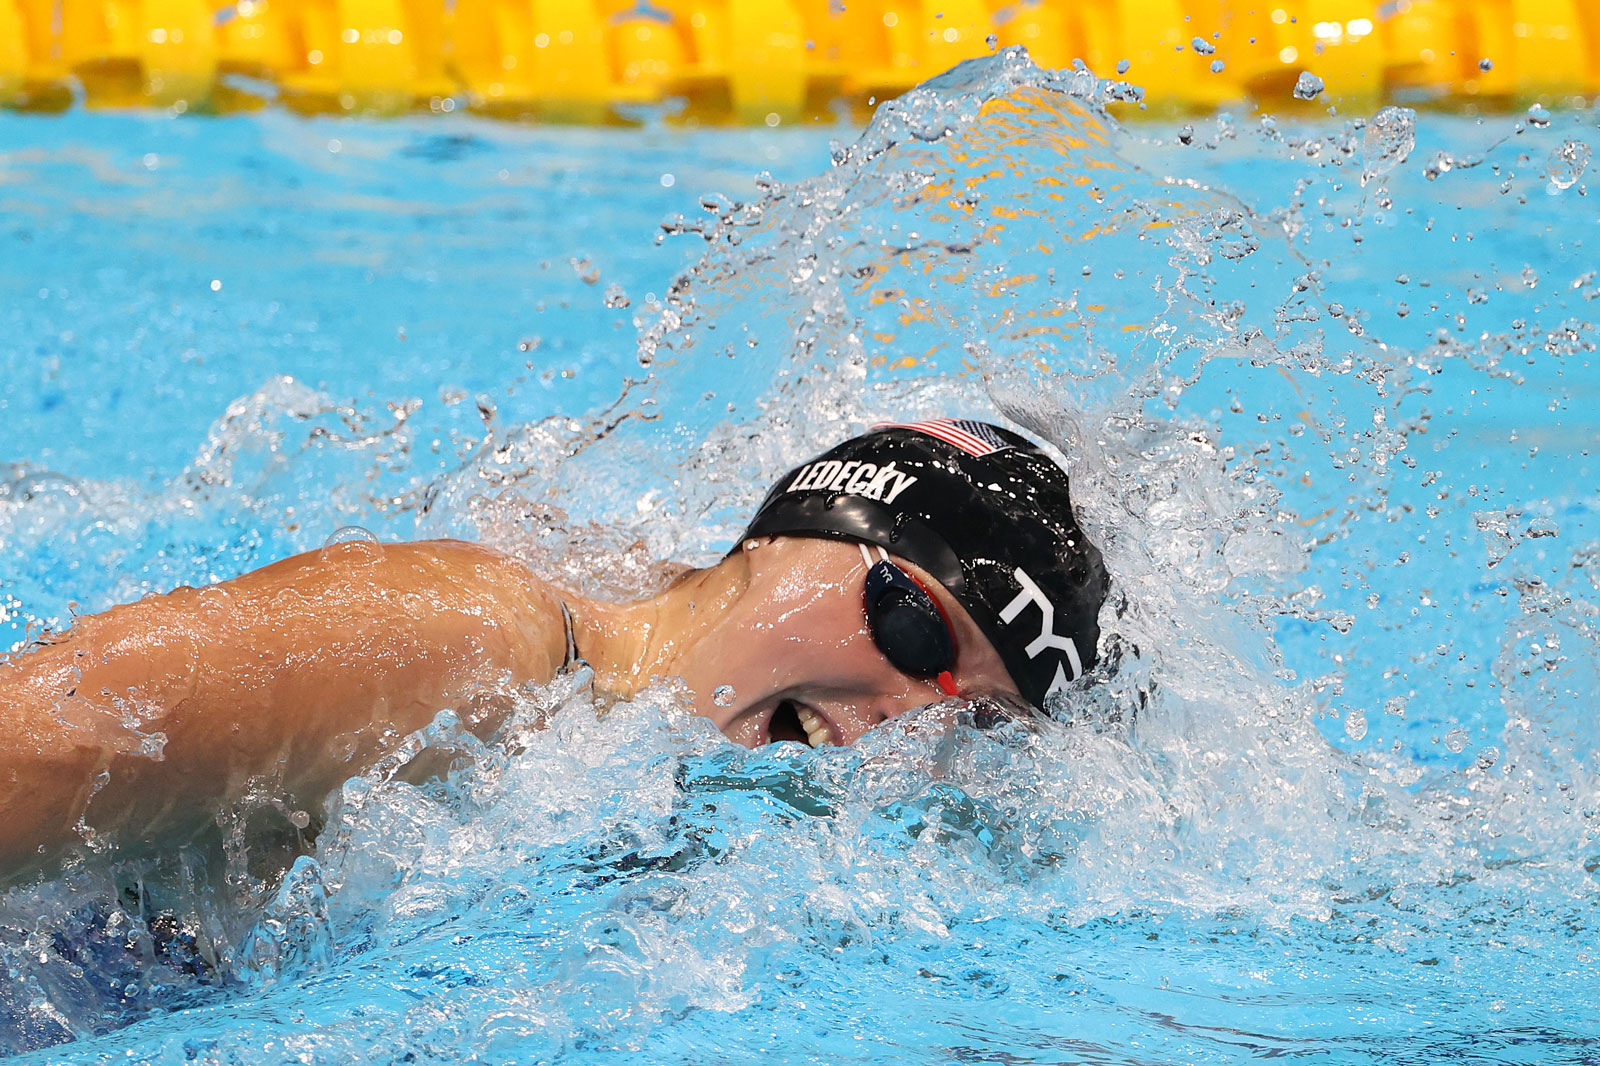 Katie Ledecky competes in the 800m Freestyle Final at Tokyo Aquatics Centre on July 31.